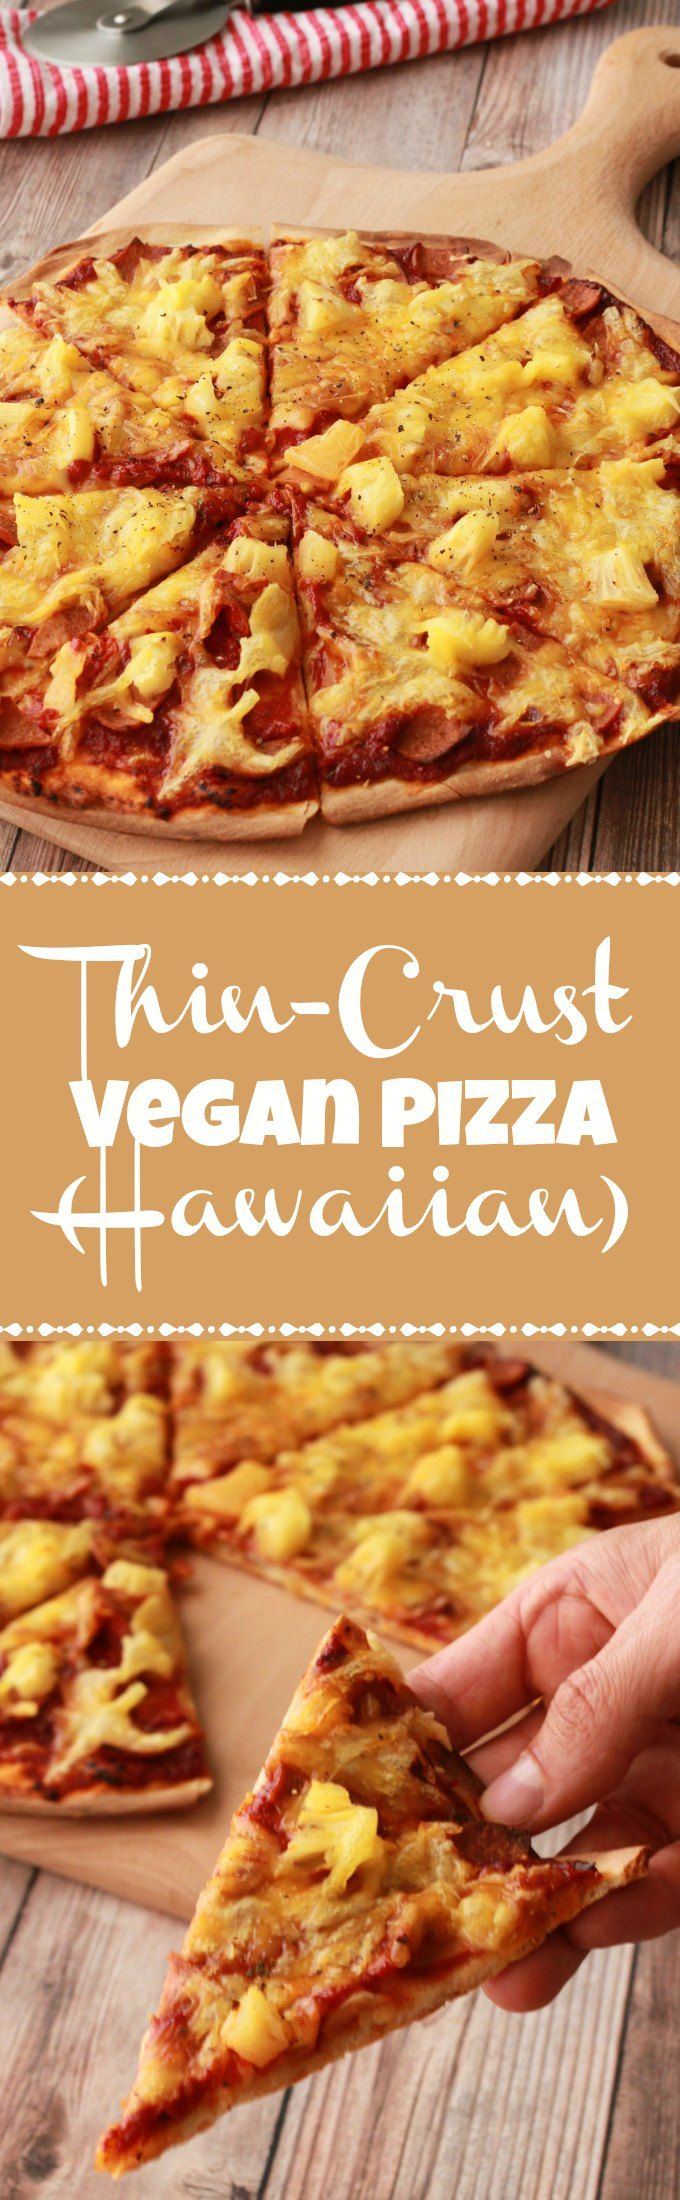 Thin-Crust Vegan Pizza. Made from scratch with homemade vegan pizza dough, a homemade tomato sauce and Hawaiian toppings! Vegan | Vegan Food | Vegan Recipes | Vegan Dinner | Dairy Free